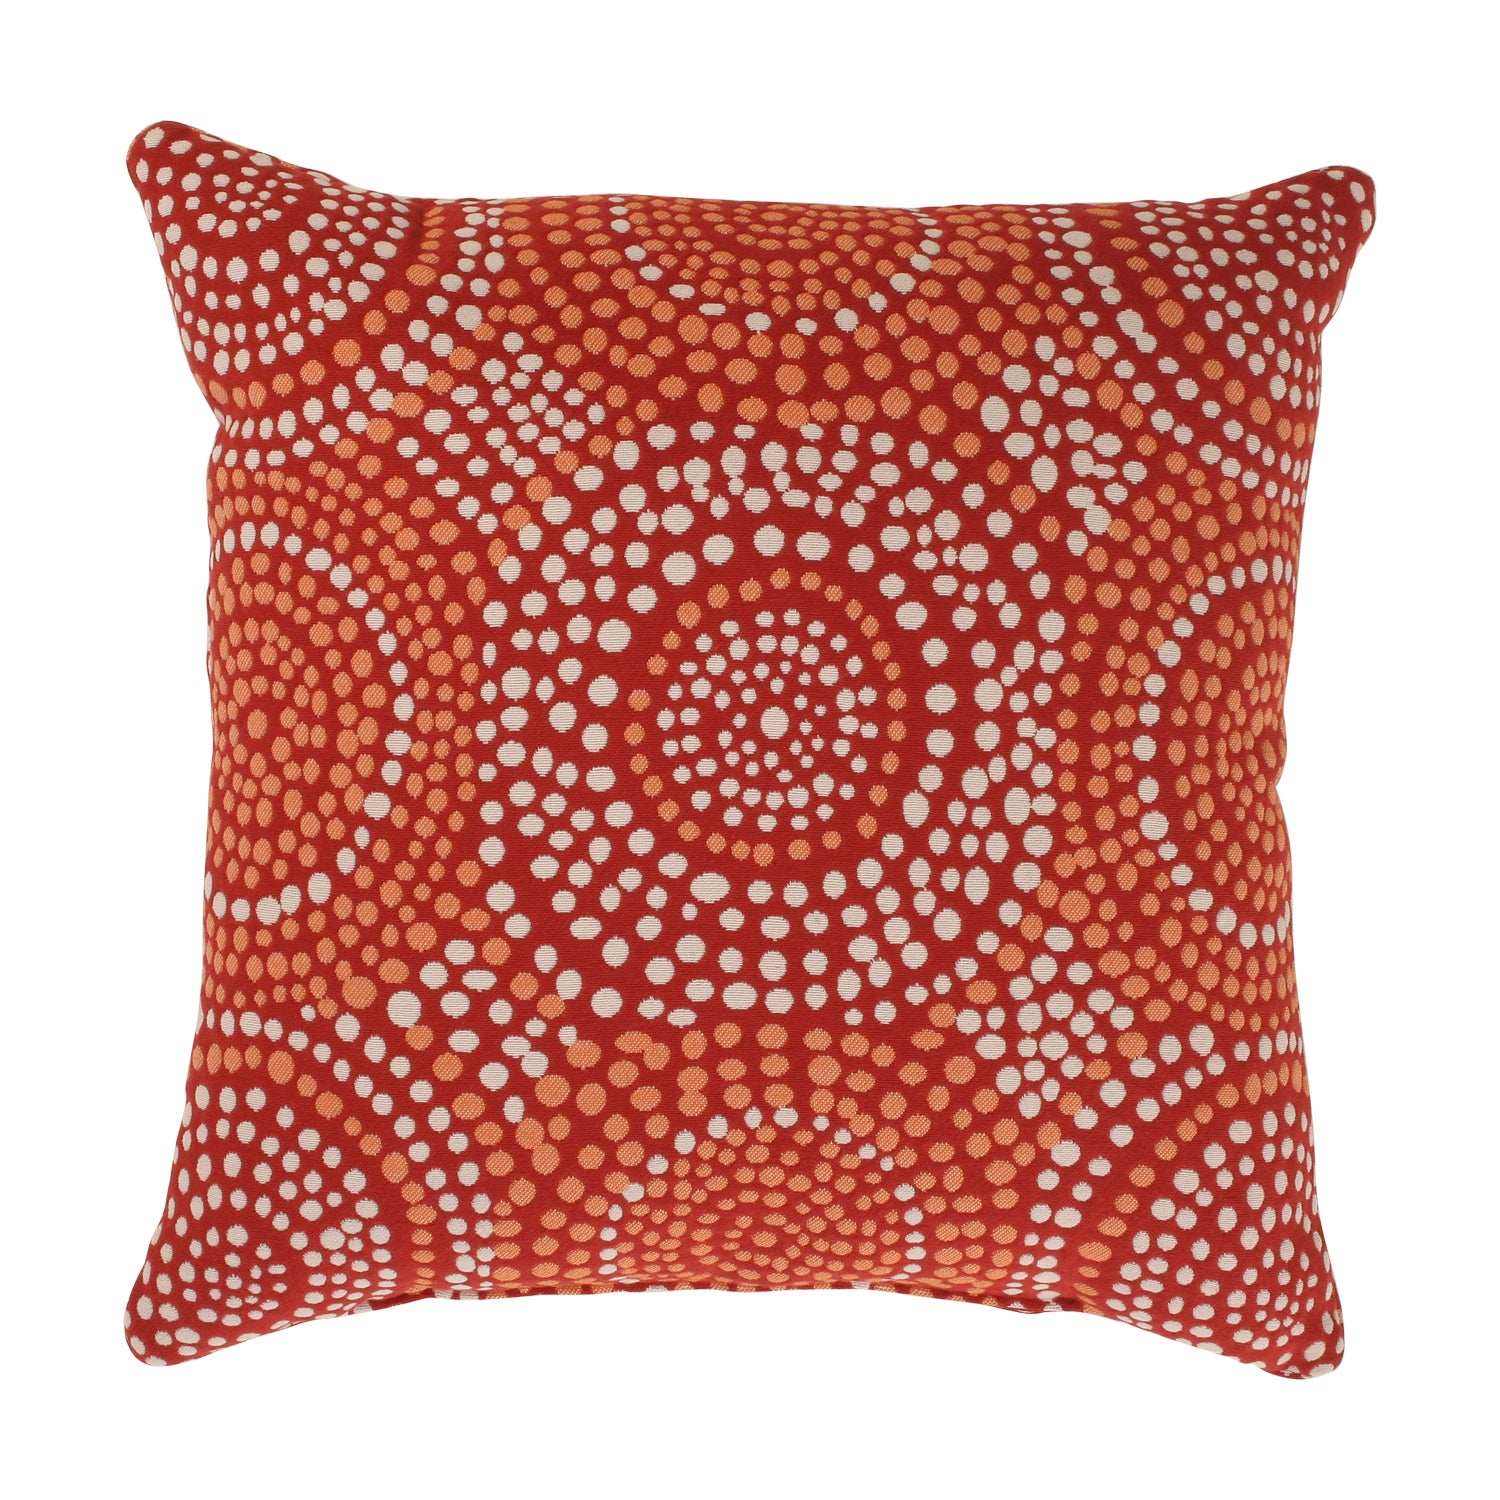 Throw Pillows On Konga : Pillow Perfect Throw Pillows - Overstock Shopping - Decorative & Accent Pillows.